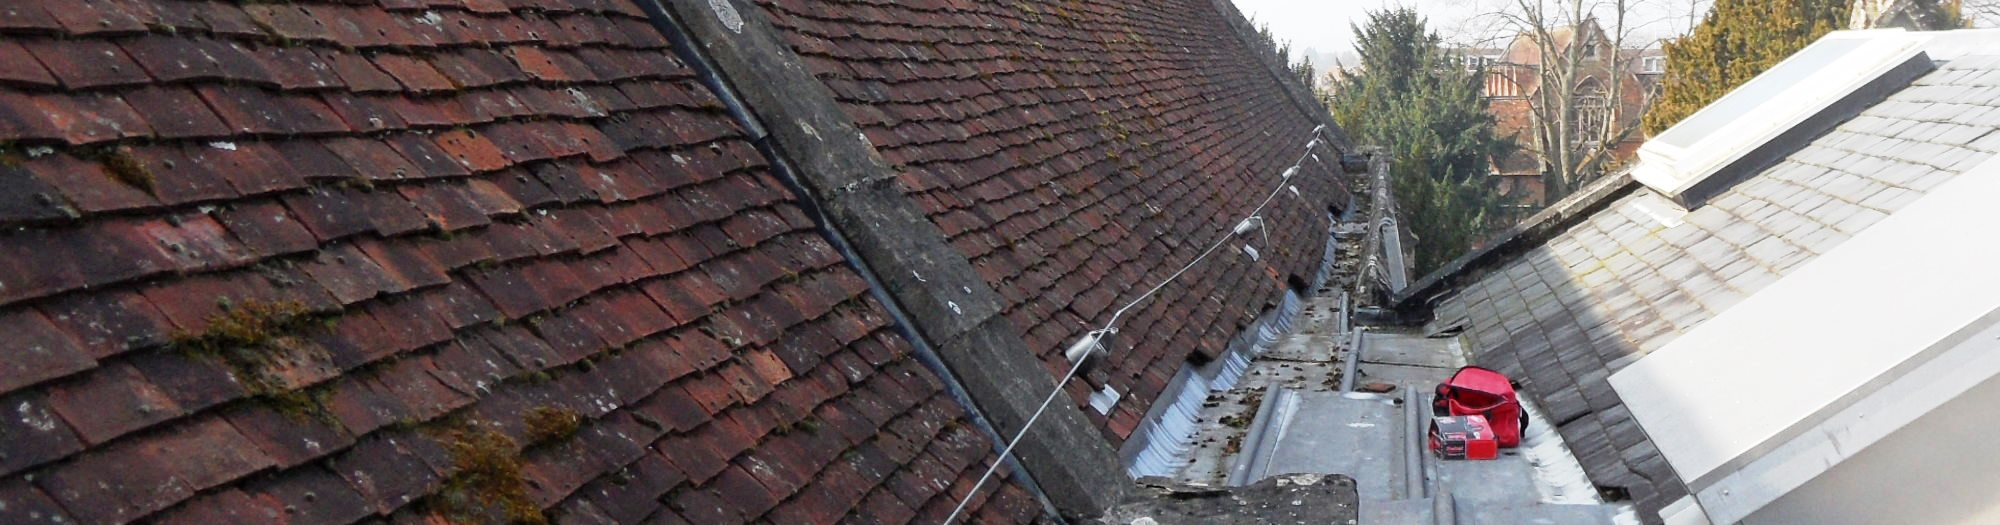 Bespoke fall arrest system fitted to tile roof